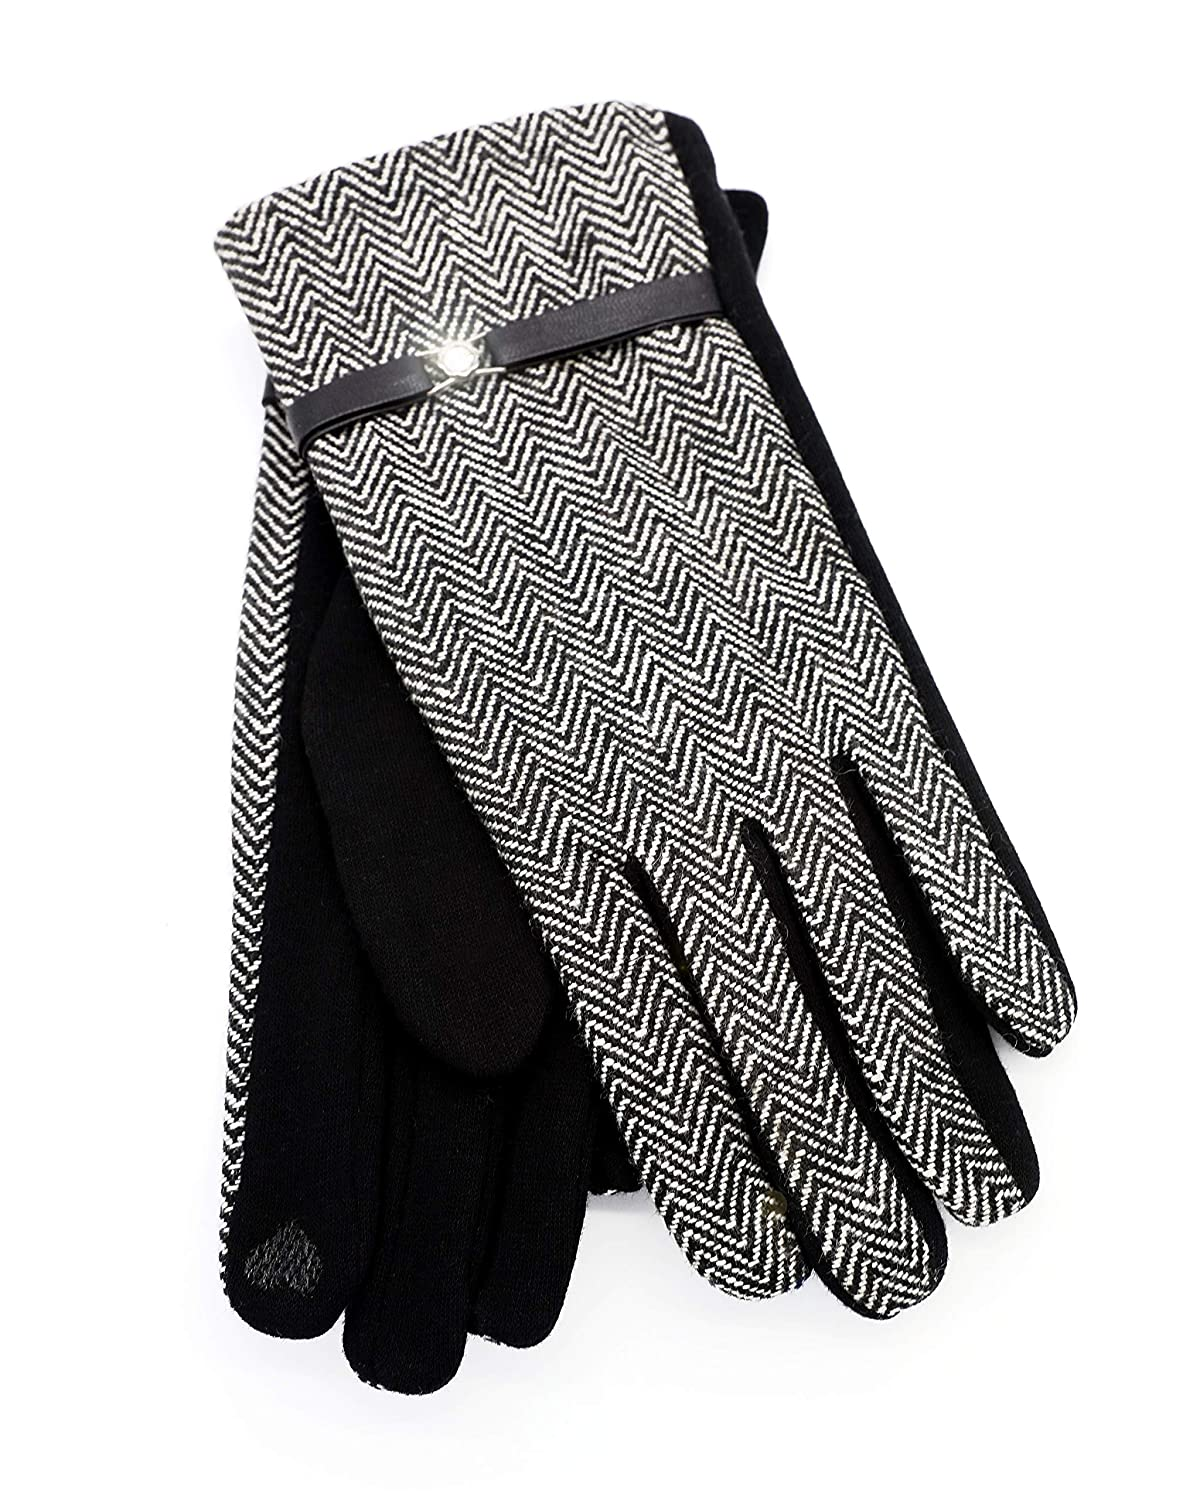 Plaid Silver Texting Gloves With Shiny Crystal With Texting Feature(GV014)